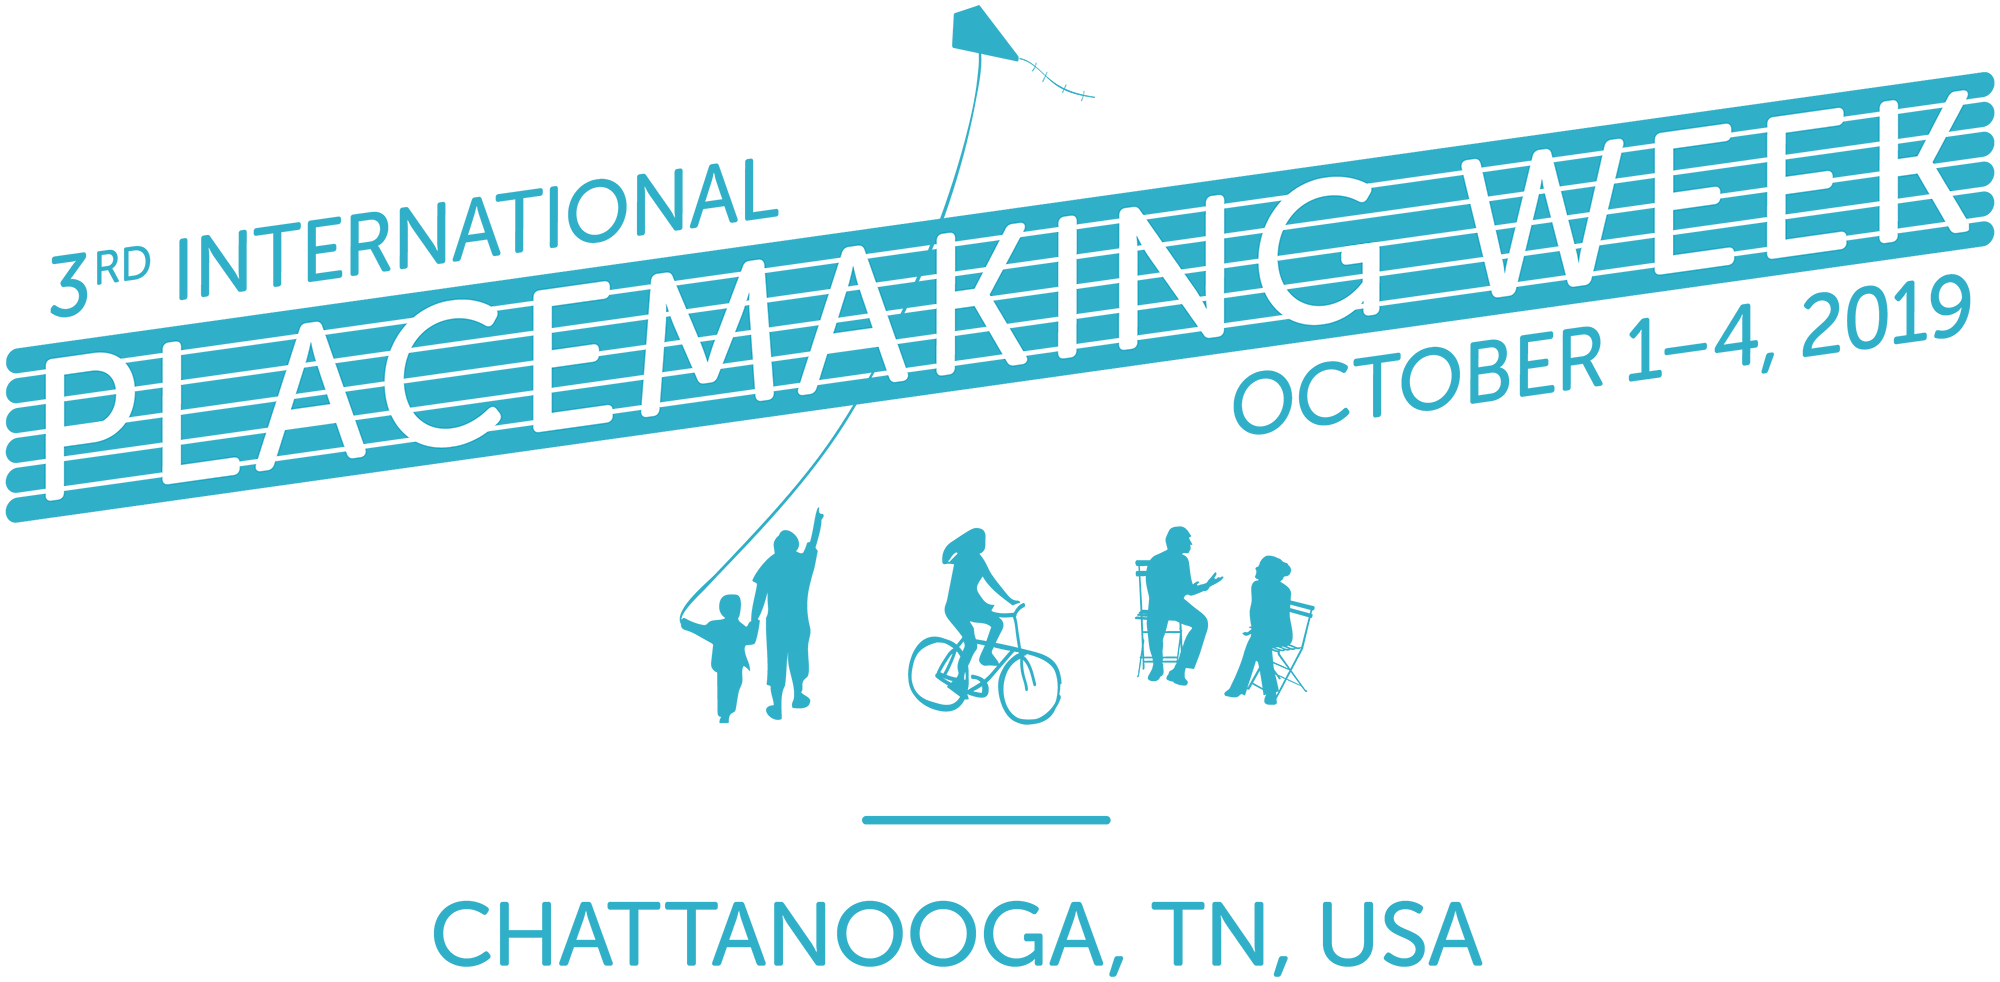 Placemaking Week Comes To Chattanooga In 2019